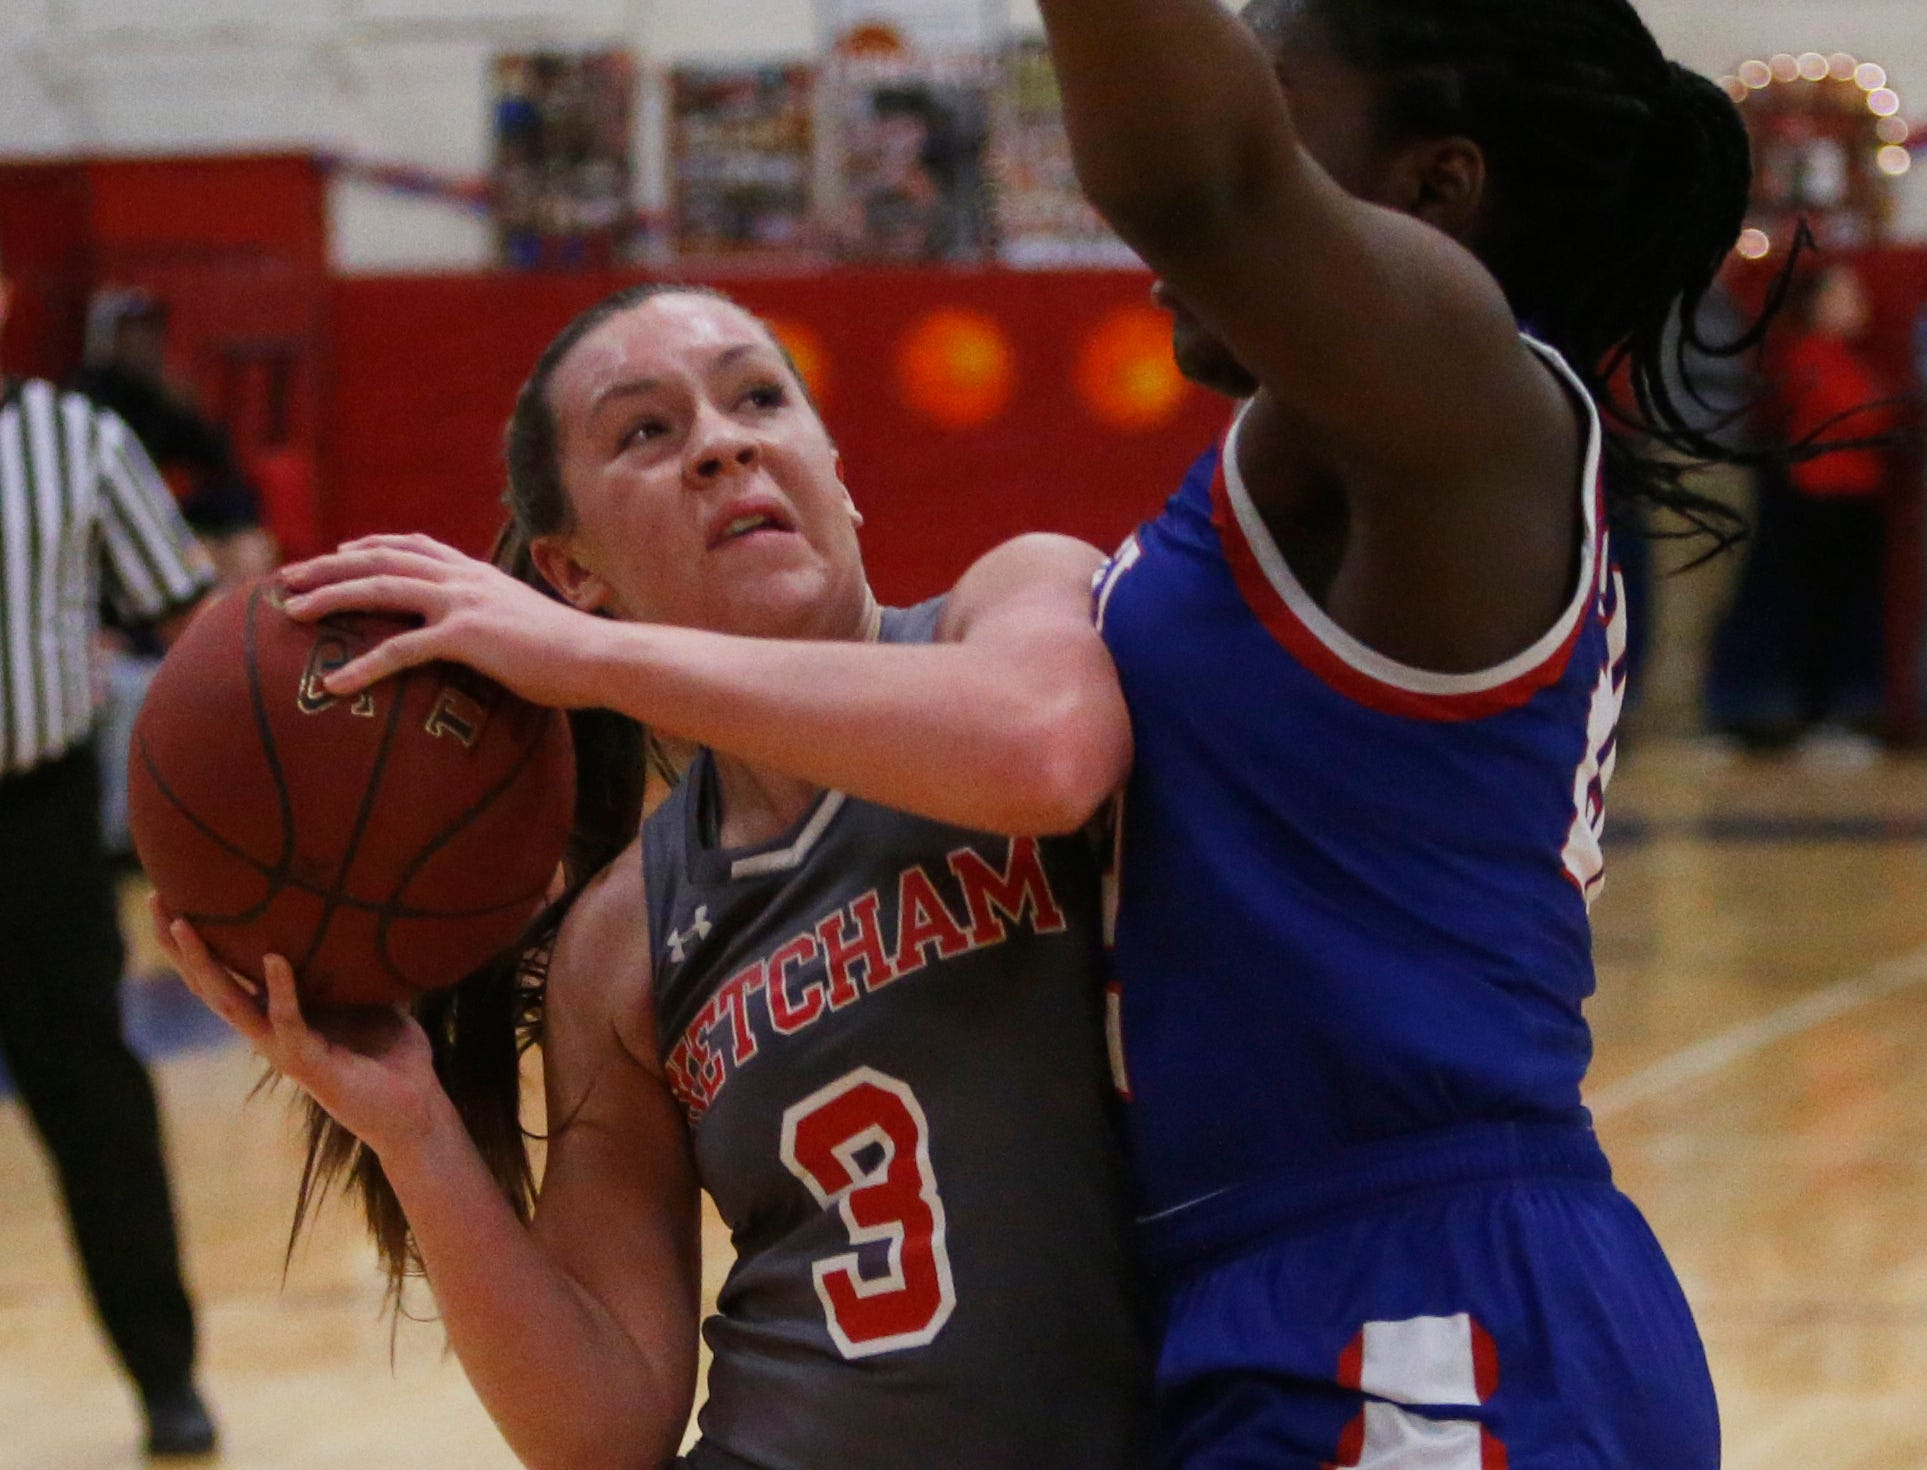 Ketcham's Katie Wall goes up for a shot while closely guarded by Carmel's Stephanie Ogbebor during a Feb. 14 game.